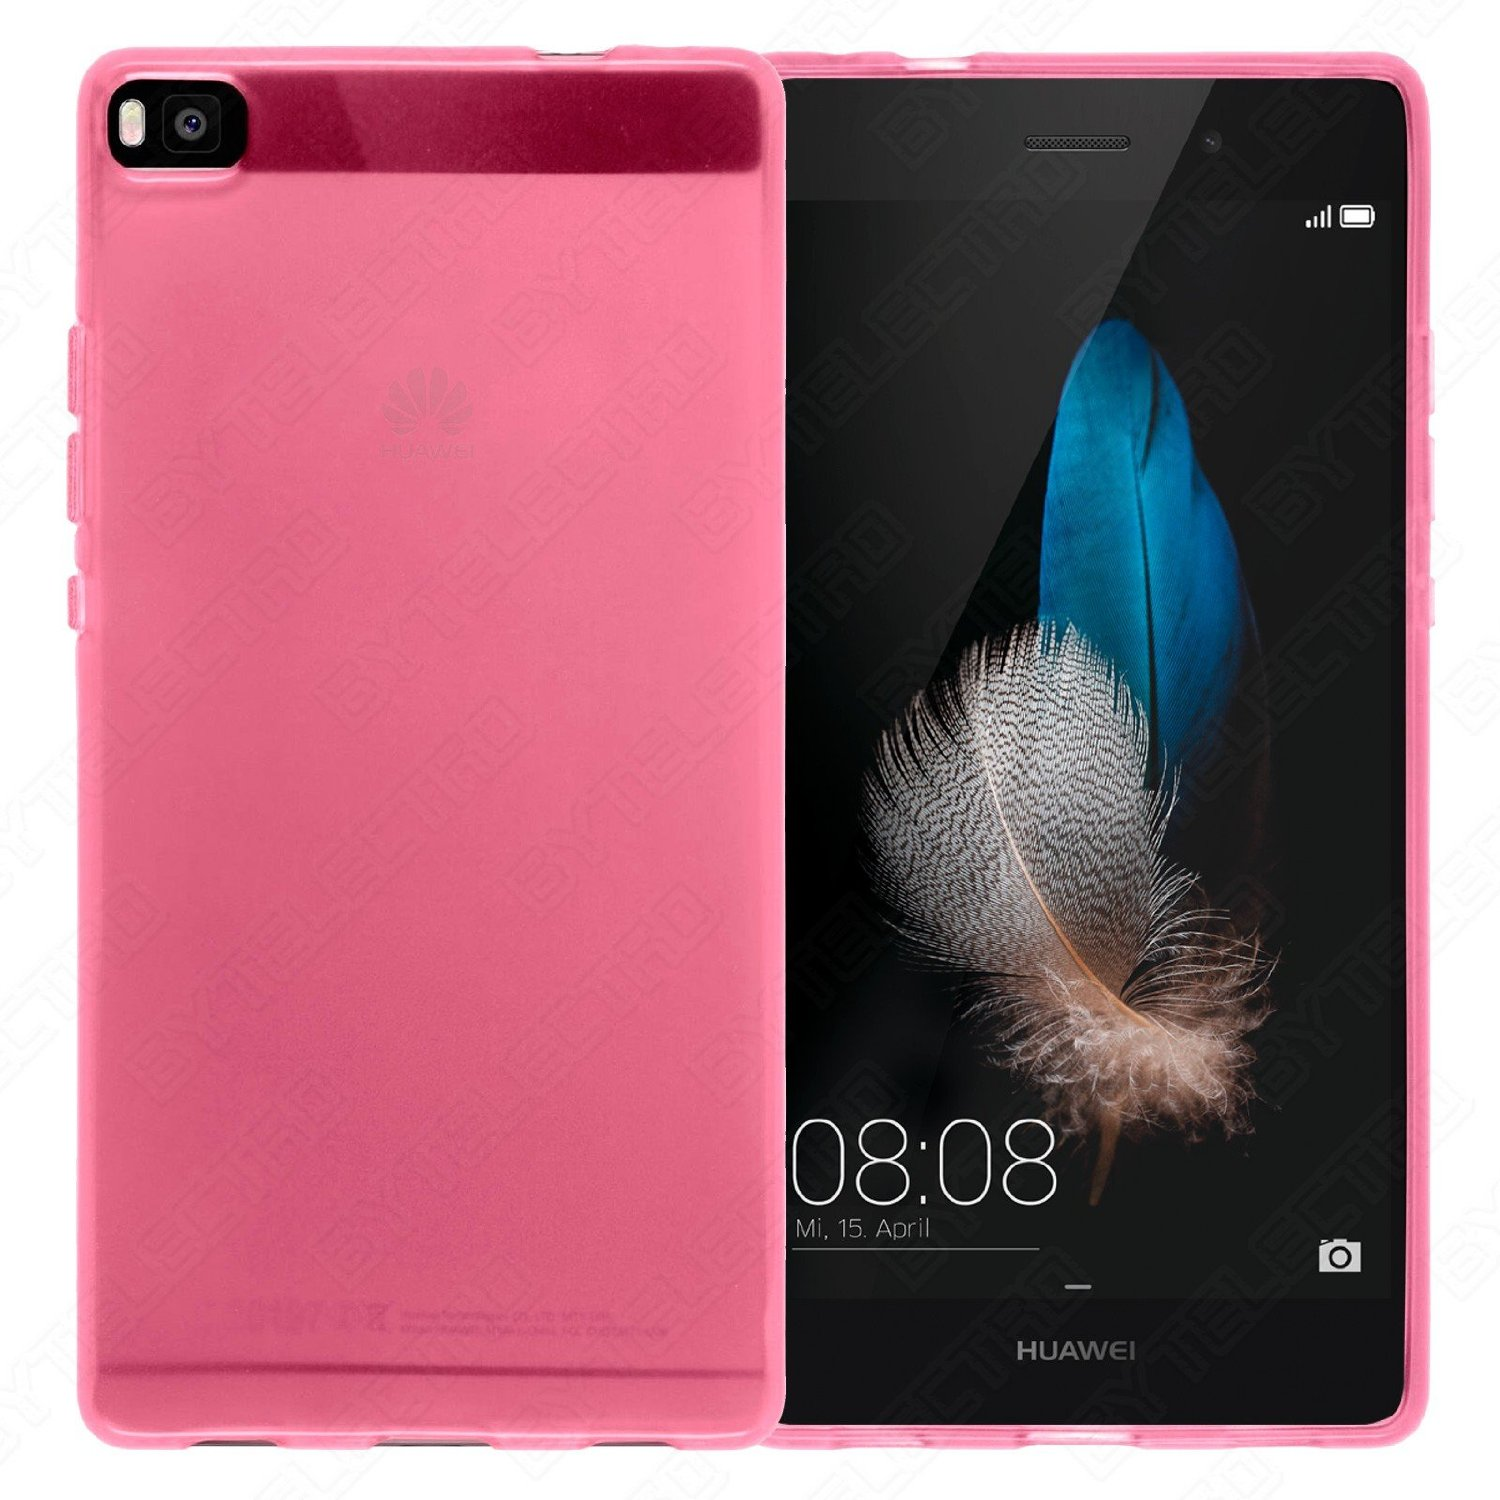 Funda Gel TPU Huawei ASCEND P8 LITE (Varios Colores Disponibles) 2